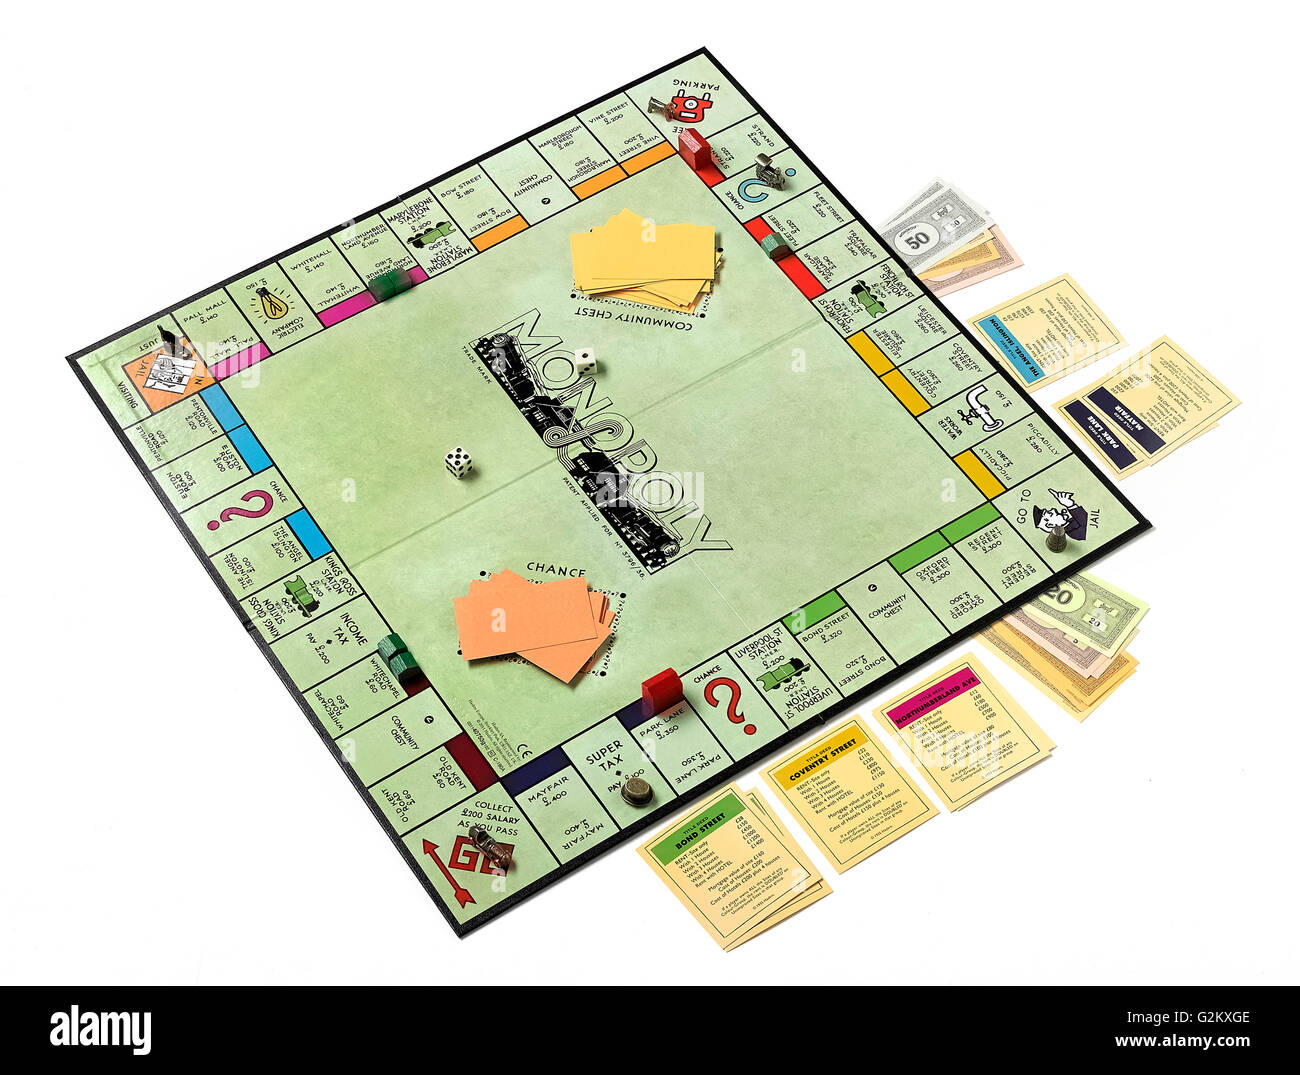 Monopoly Board Game Stock Photos Images Circuit Diagram Laid Out For A Image